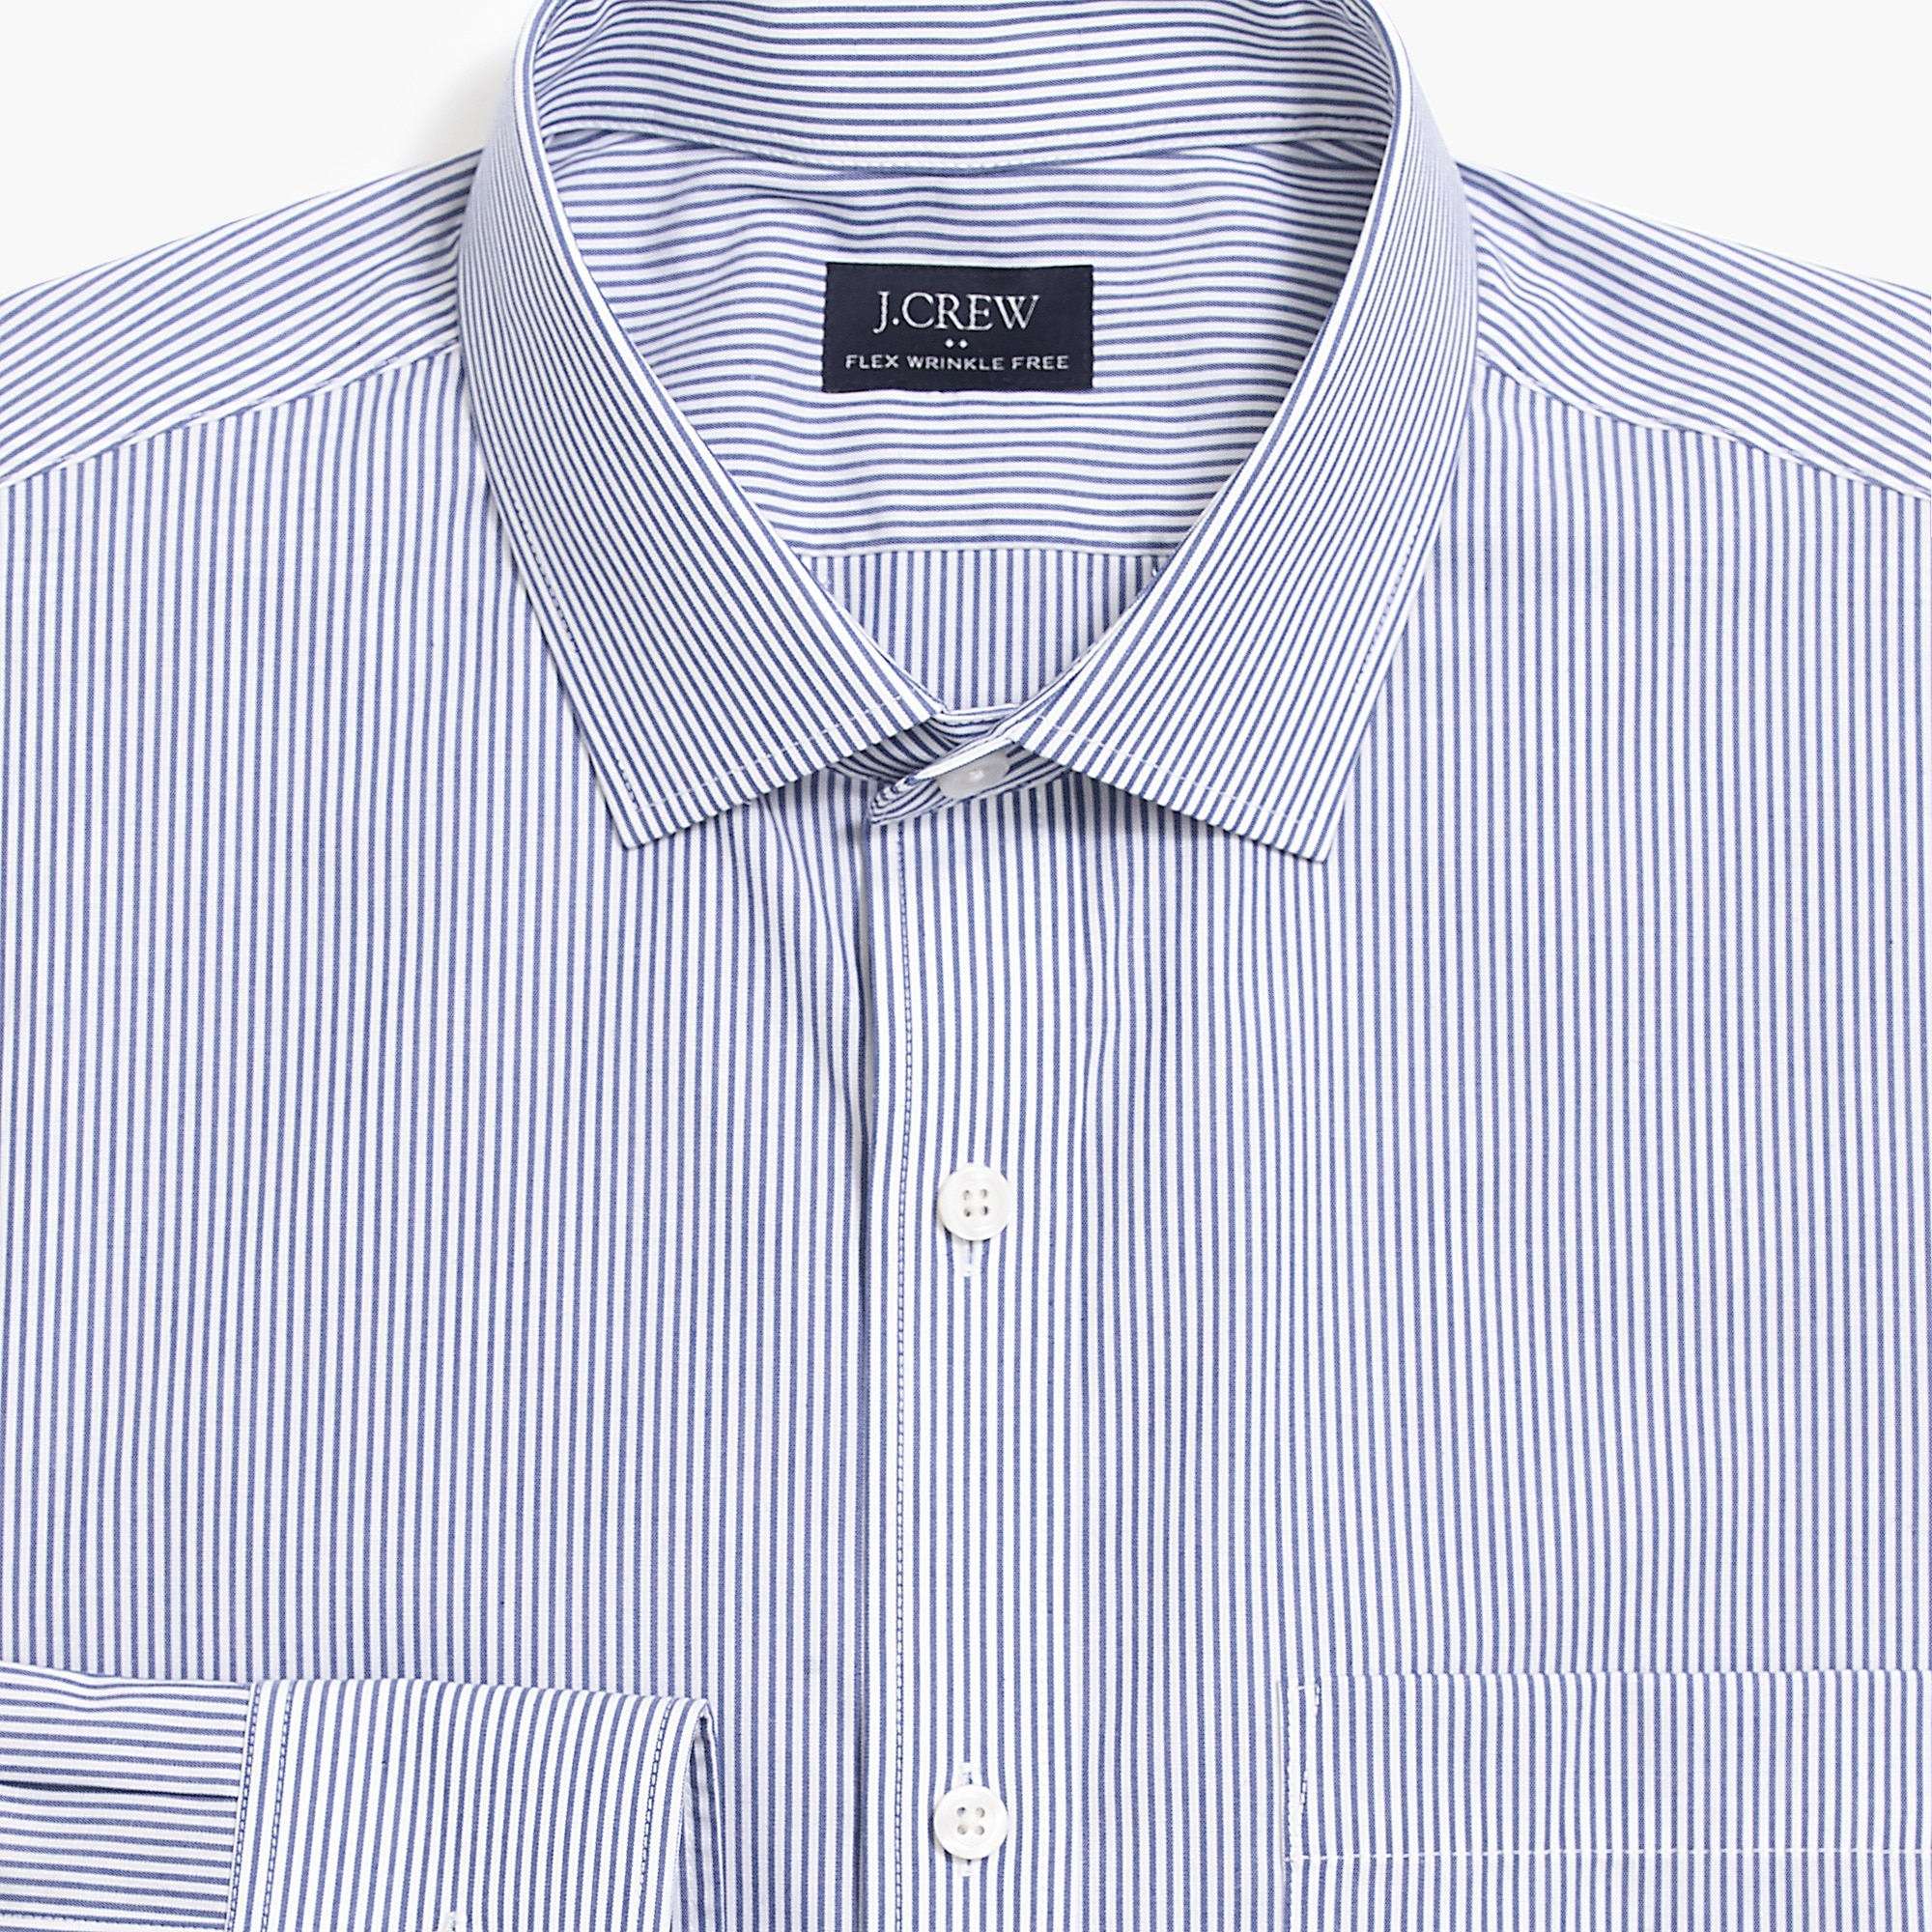 slim thompson flex wrinkle-free dress shirt in stripe : factorymen wrinkle-free dress shirts